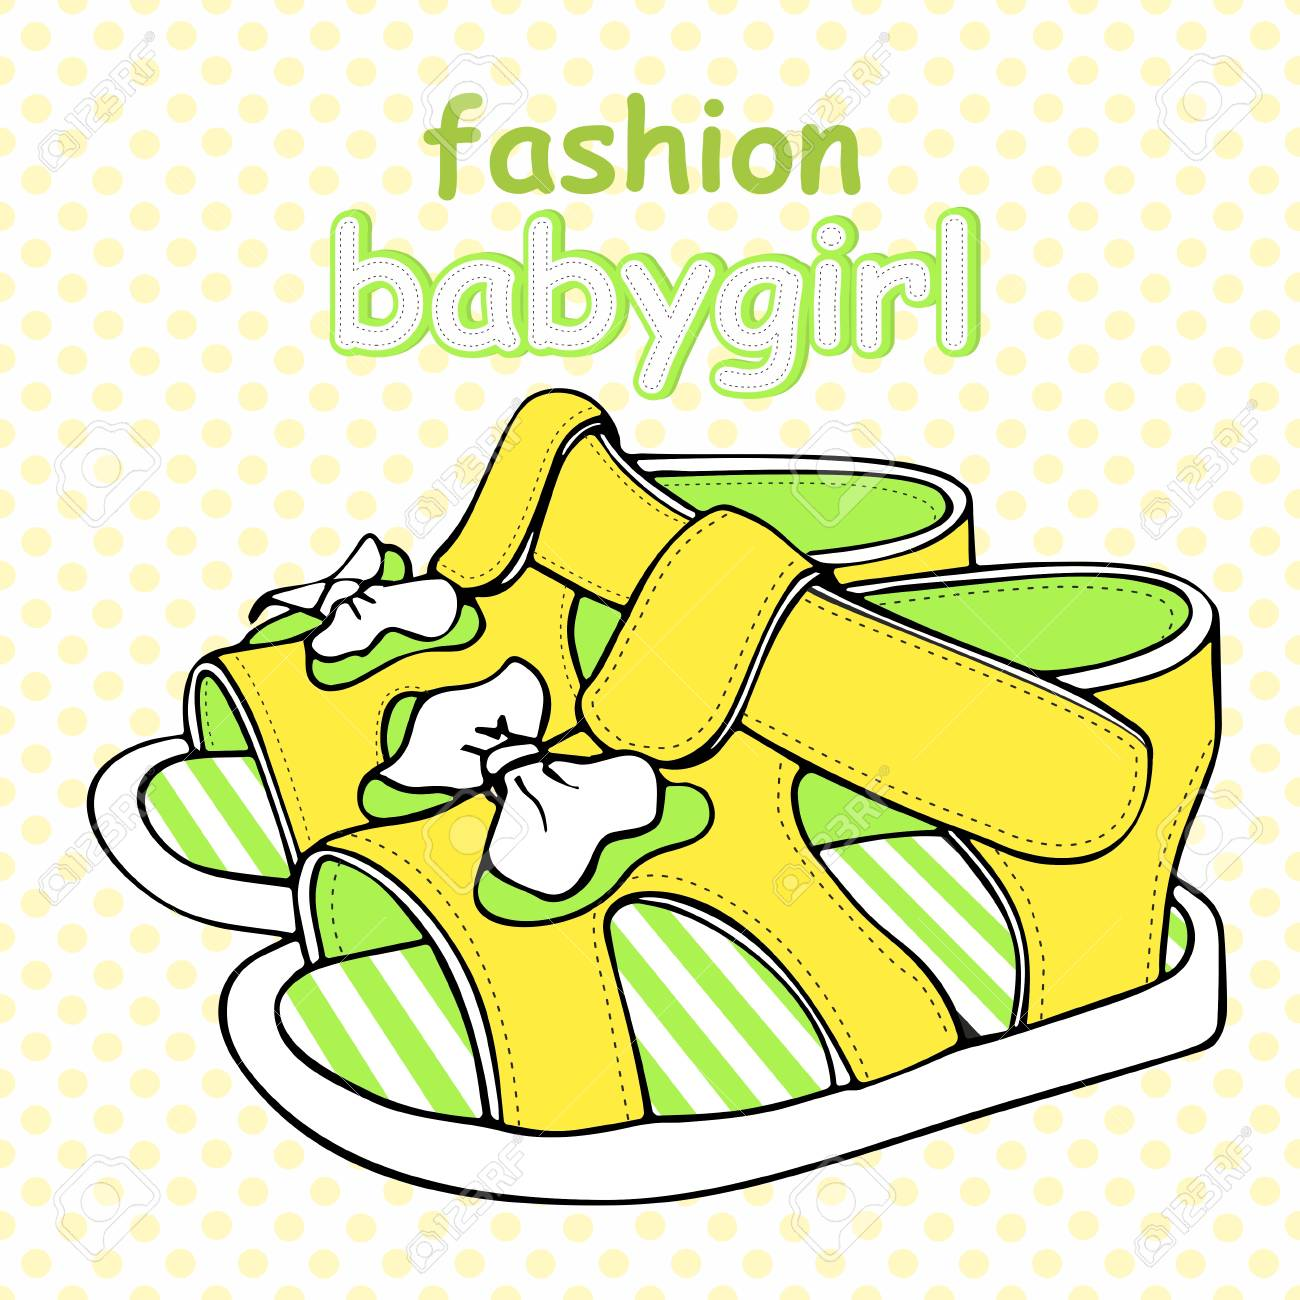 3091667210bb2 Colorful children's sandals with bows for baby boy or baby girl vector  illustration. Stock Vector